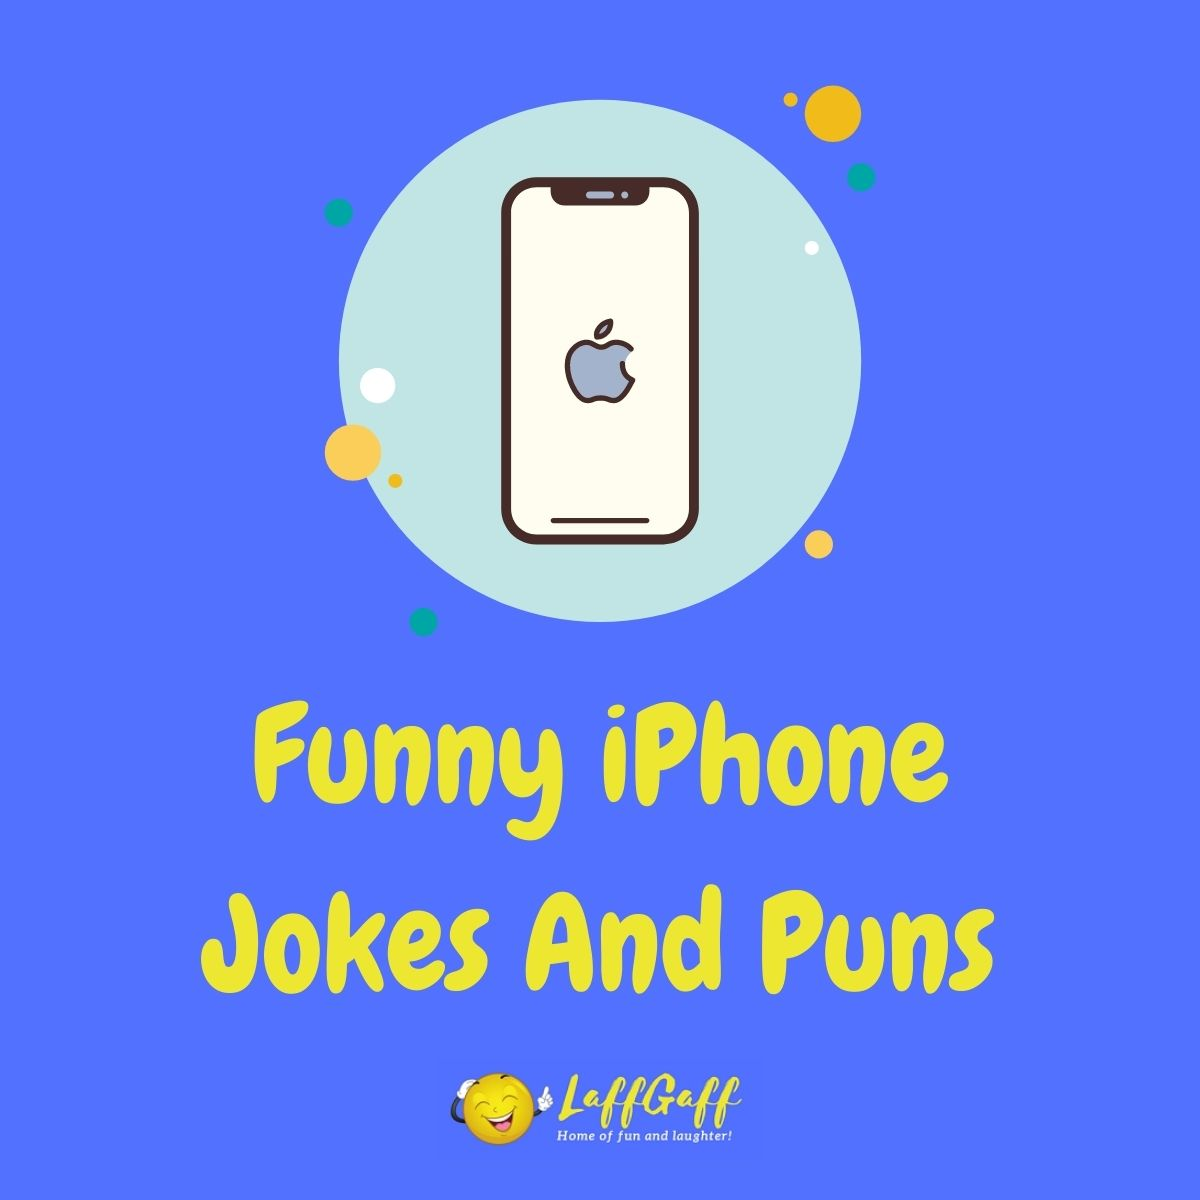 Featured image for a page of funny iPhone jokes and puns.